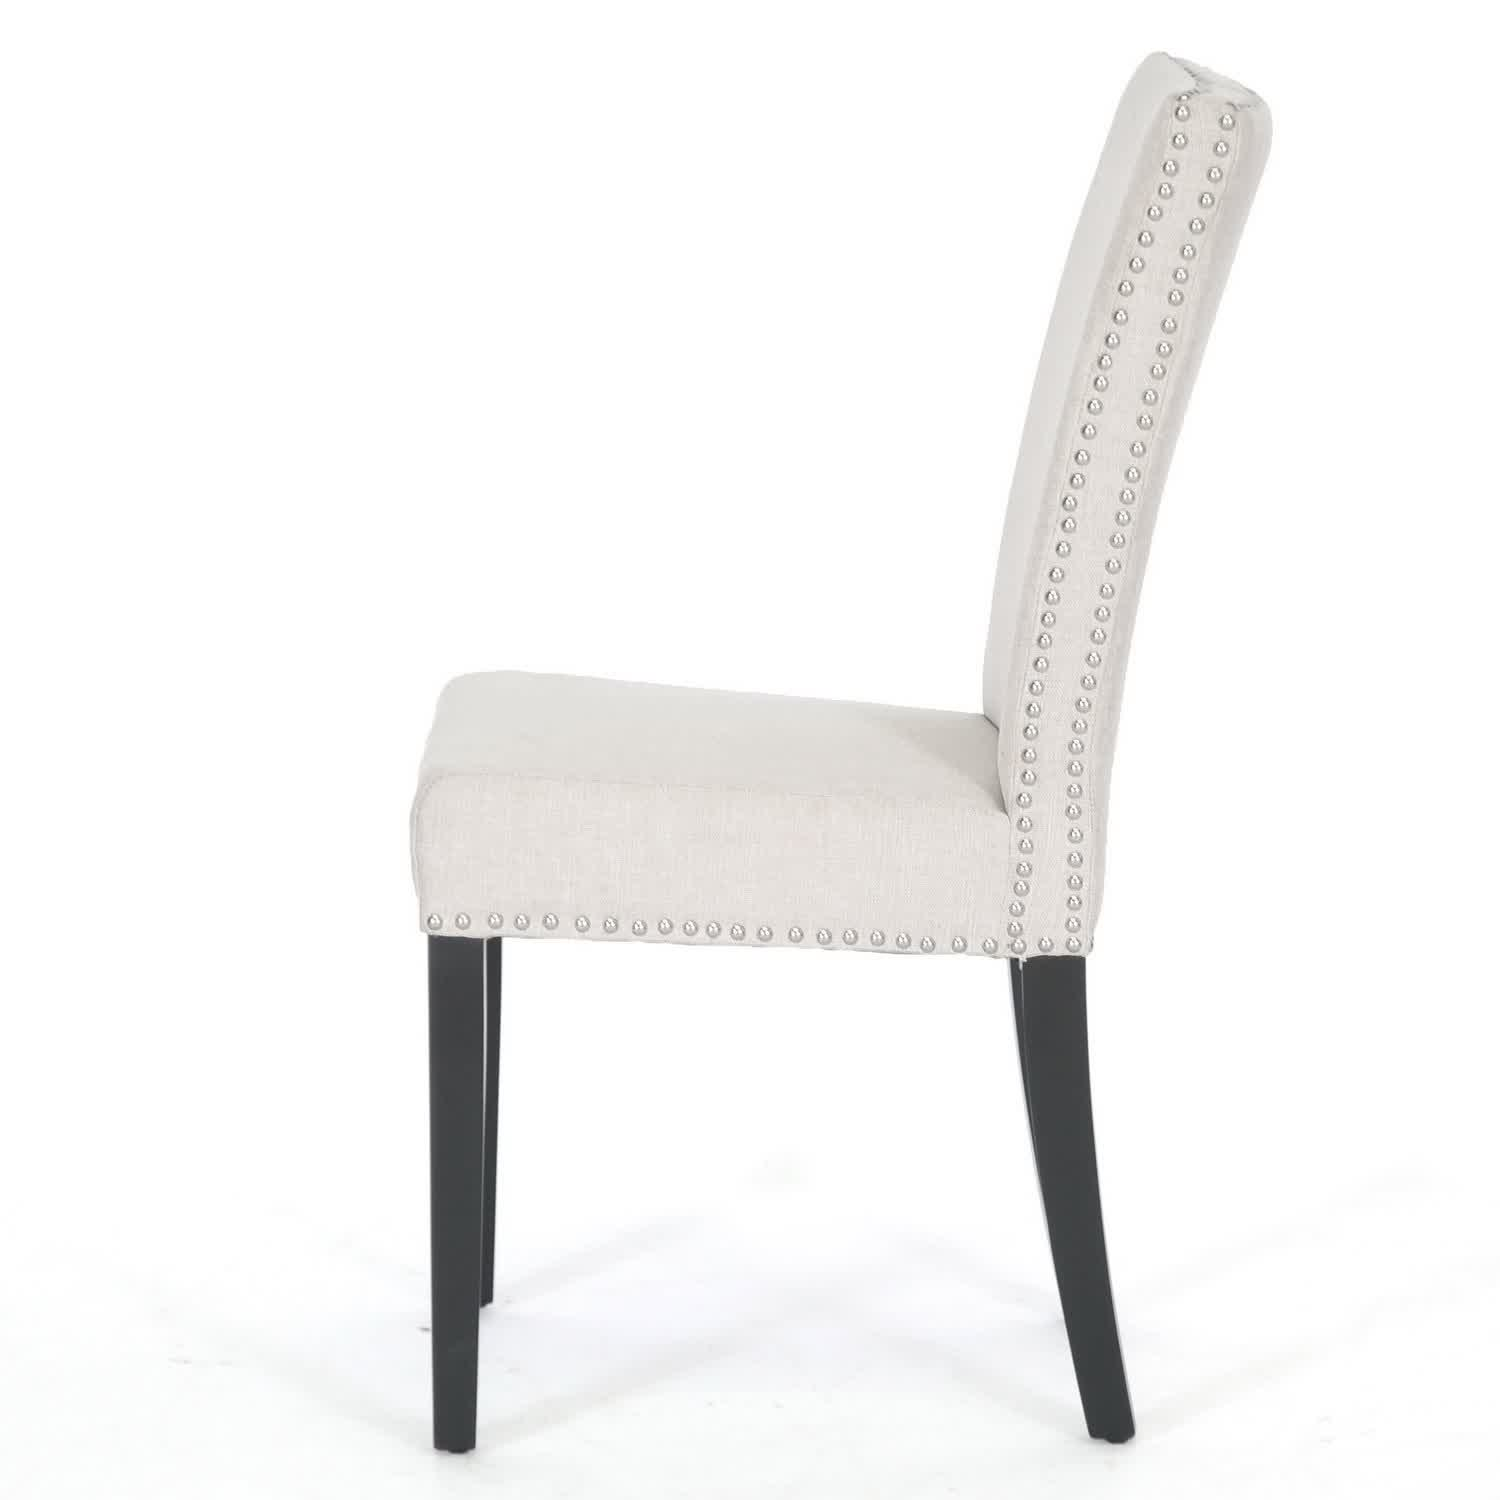 Upholstered Chairs For Dining Room White Upholstered Dining Chair Displaying Infinite